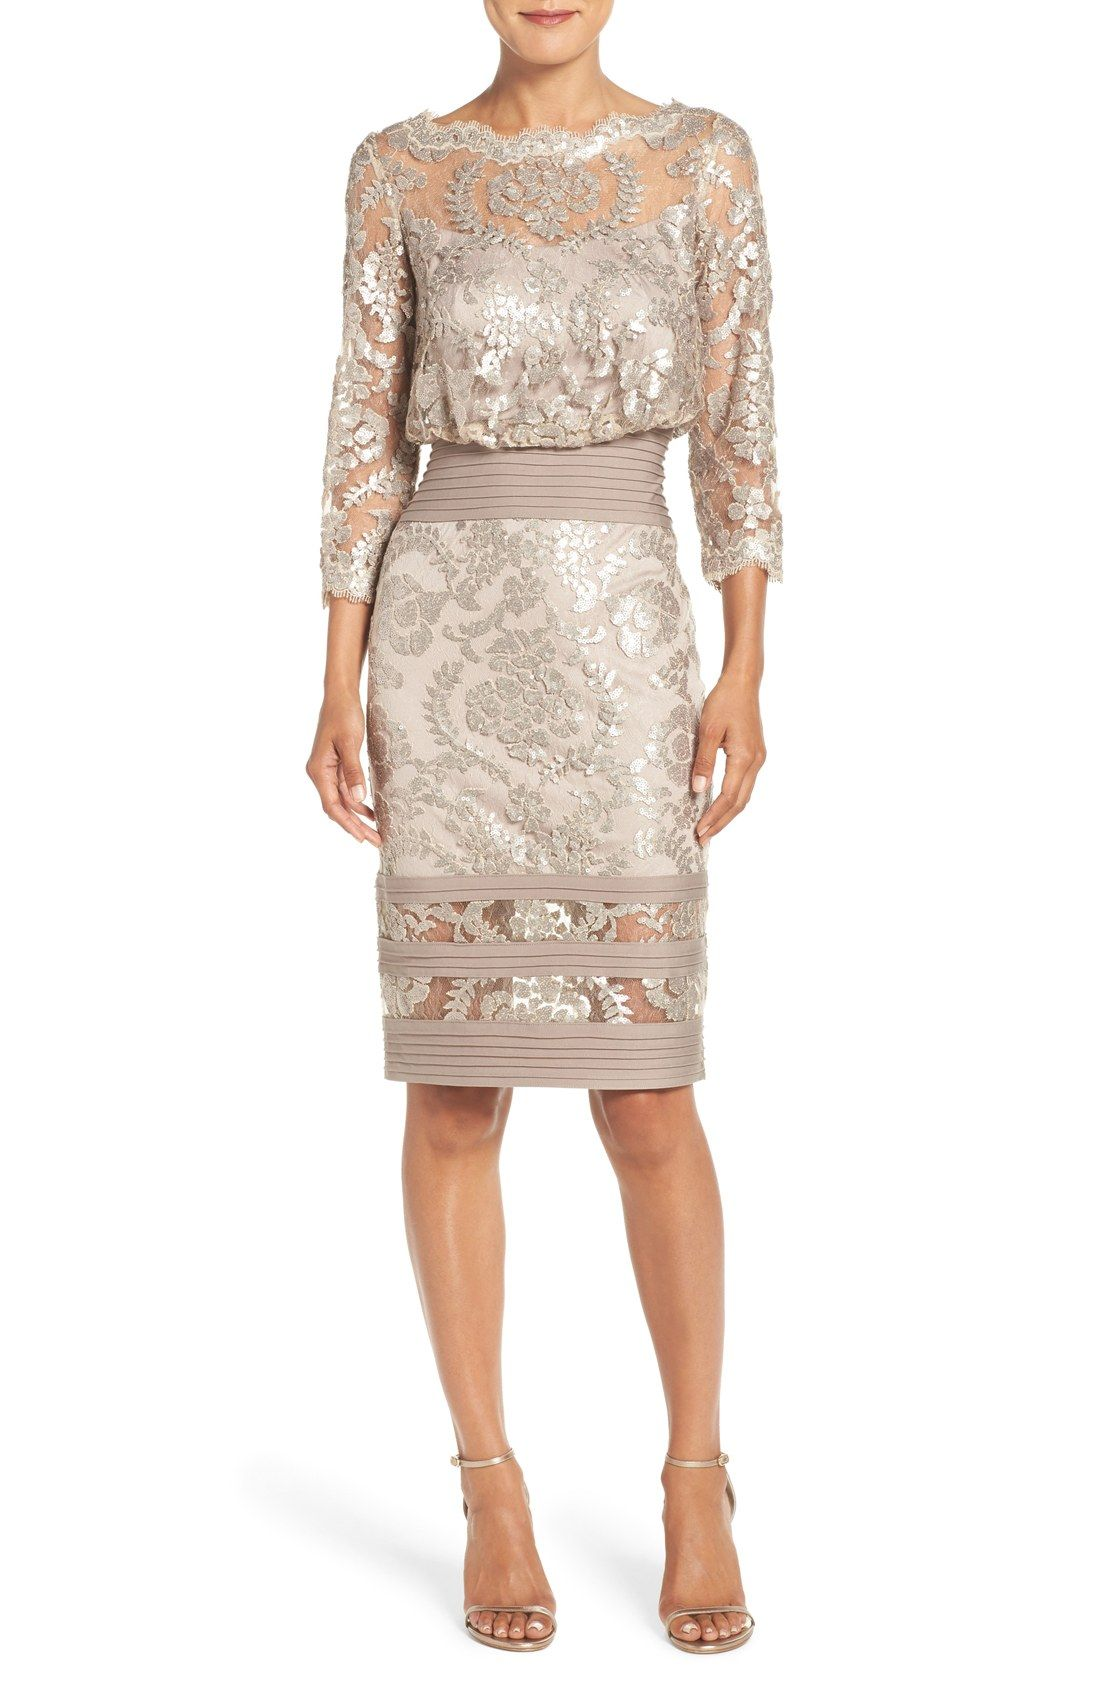 Is It Ok For The Mother Of The Bride Or To Wear A Champagne Color Gown 1 Strapless Rene Ruiz Jacquard Gown Trendy Dresses Lace Sheath Dress Bride Clothes